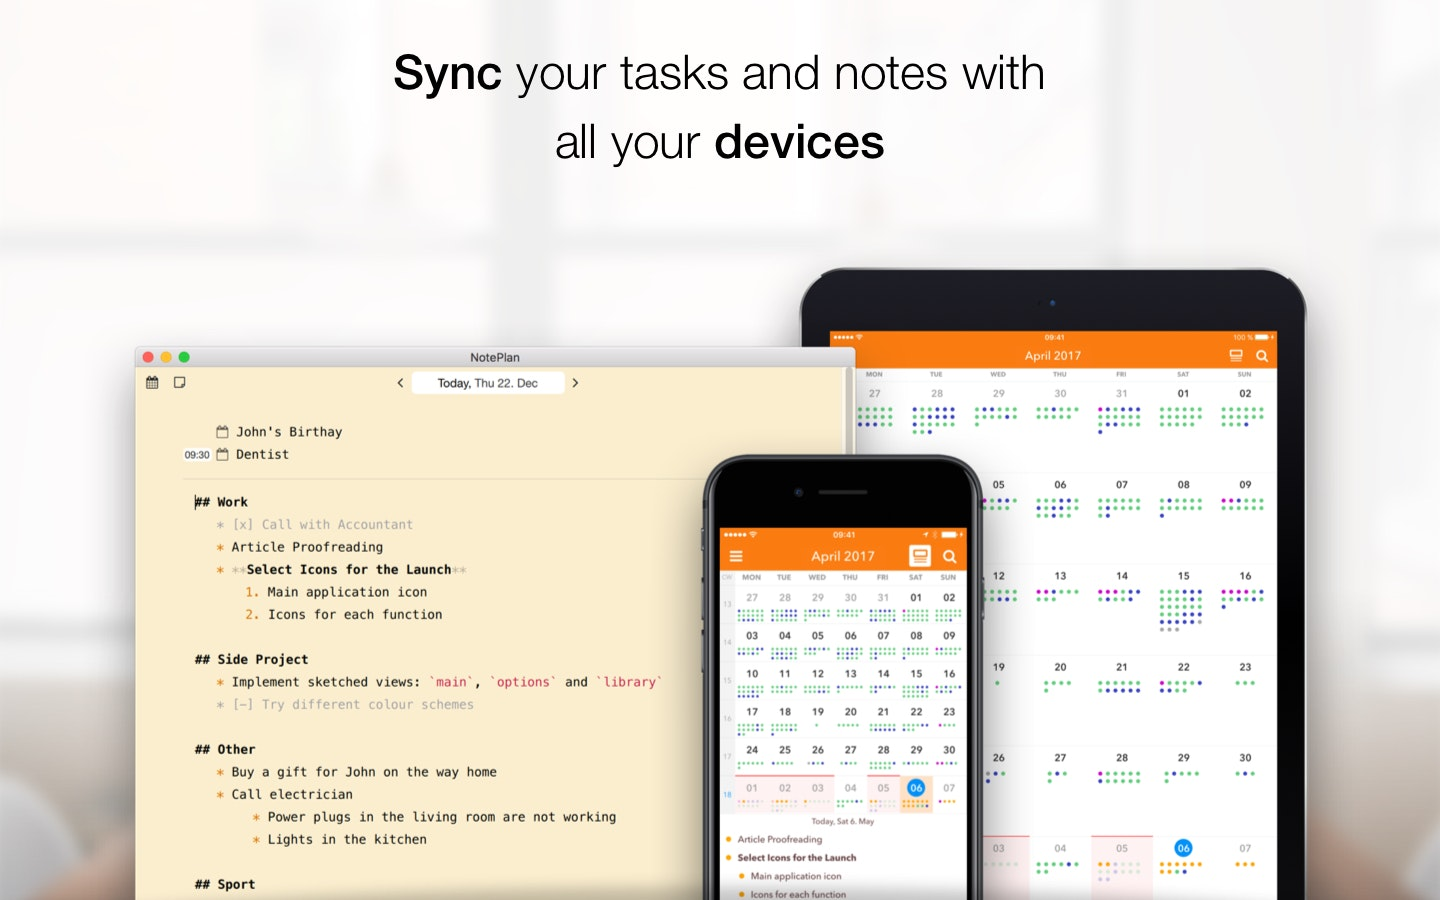 Sync your tasks and notes with all your devices